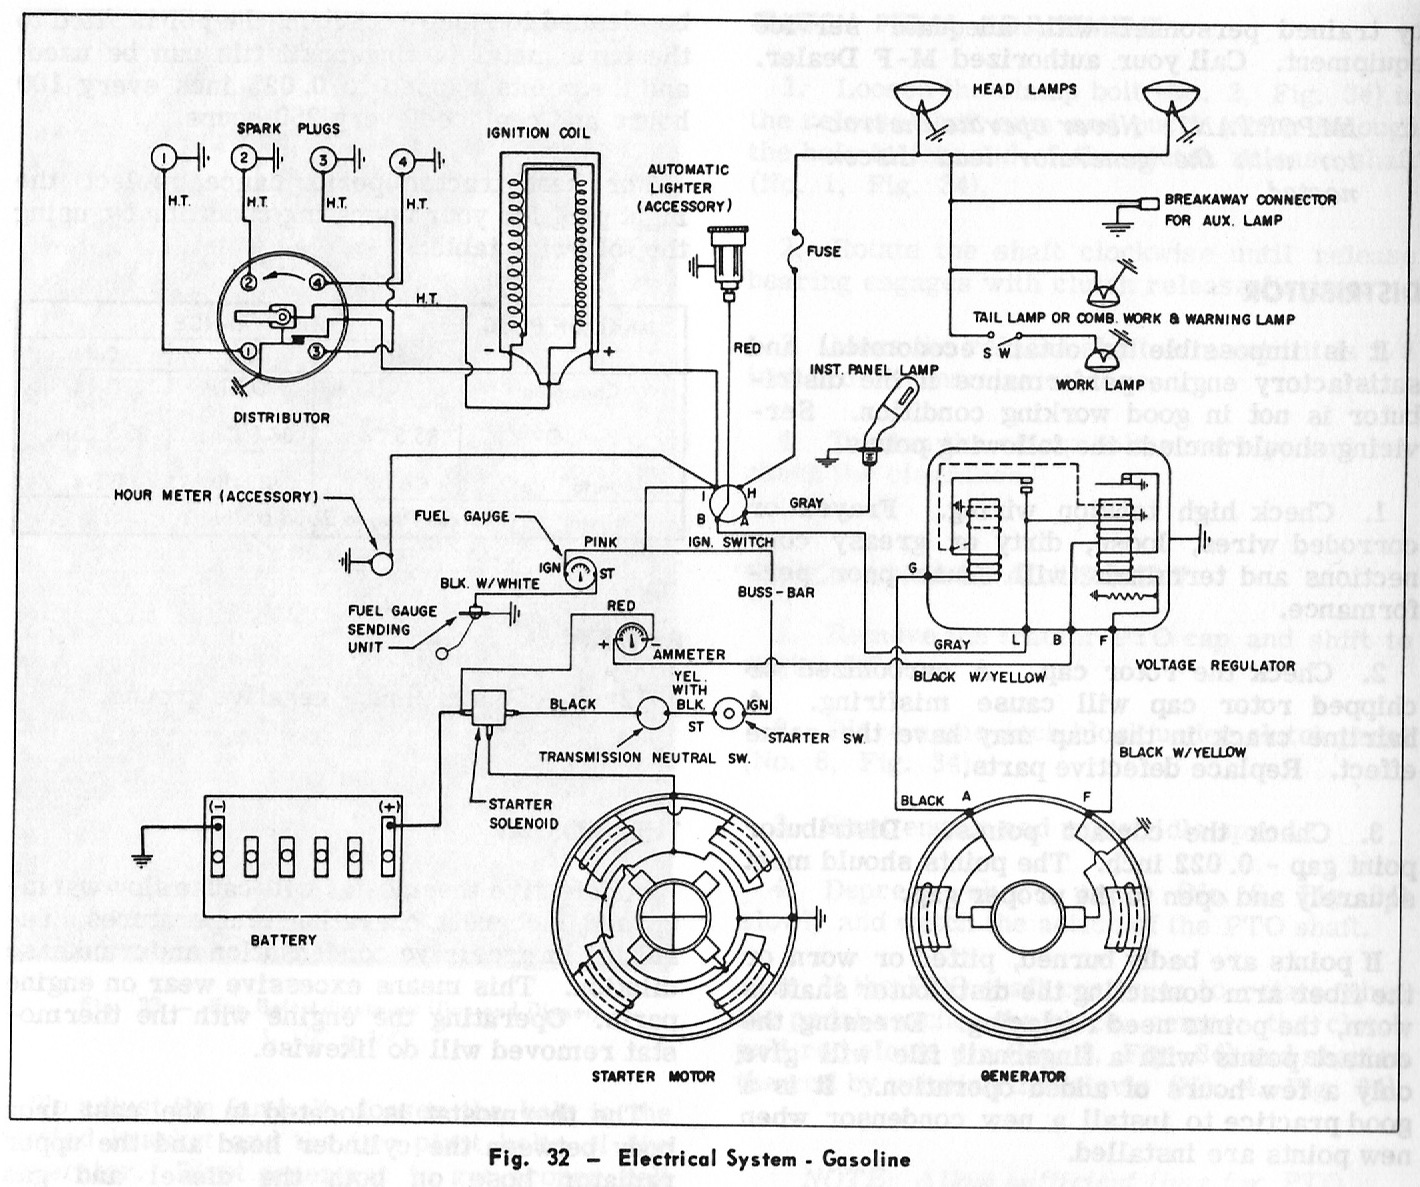 1955 Ford F100 Wiring Diagram. Ford. Auto Wiring Diagram